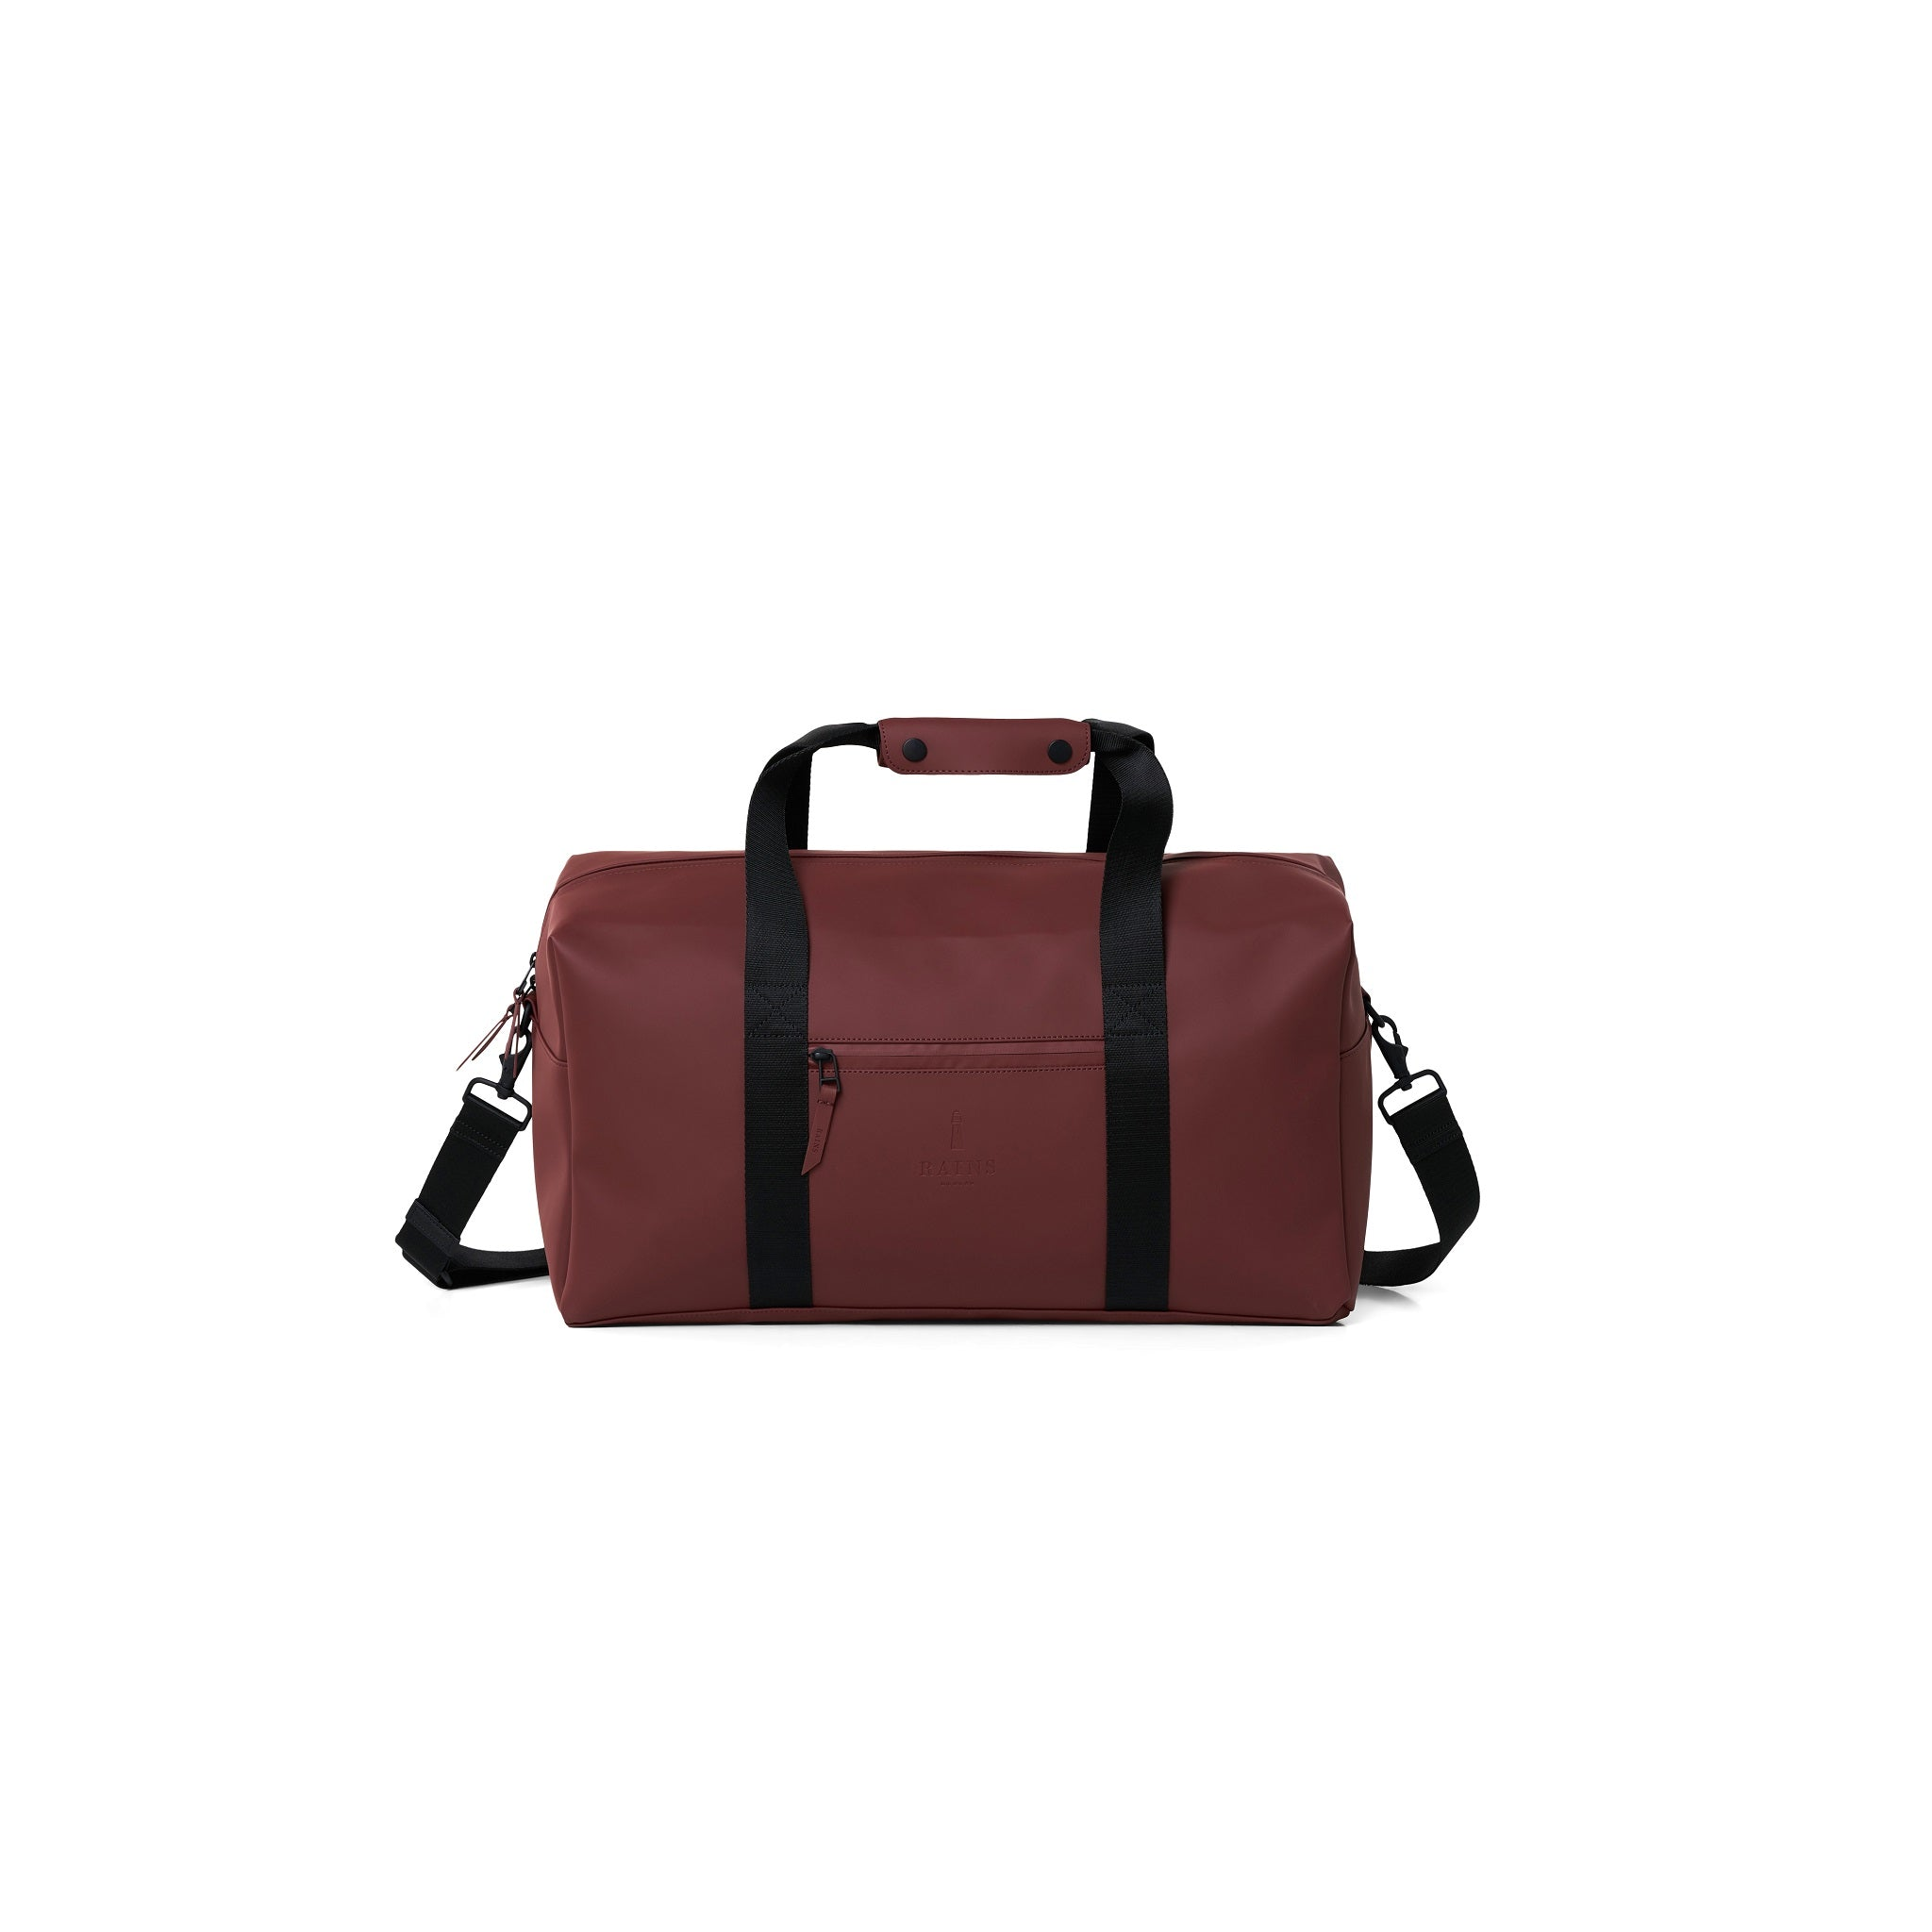 Gym bag maroon